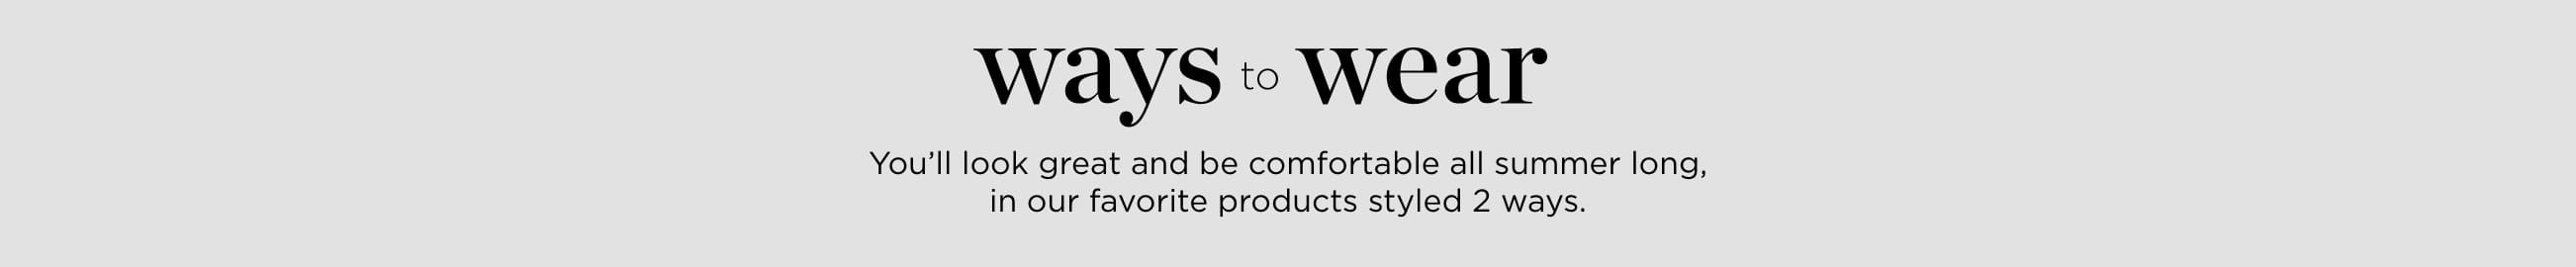 Ways to Wear. You'll look great and be comfortable all summer long in our favorite products styled two ways.